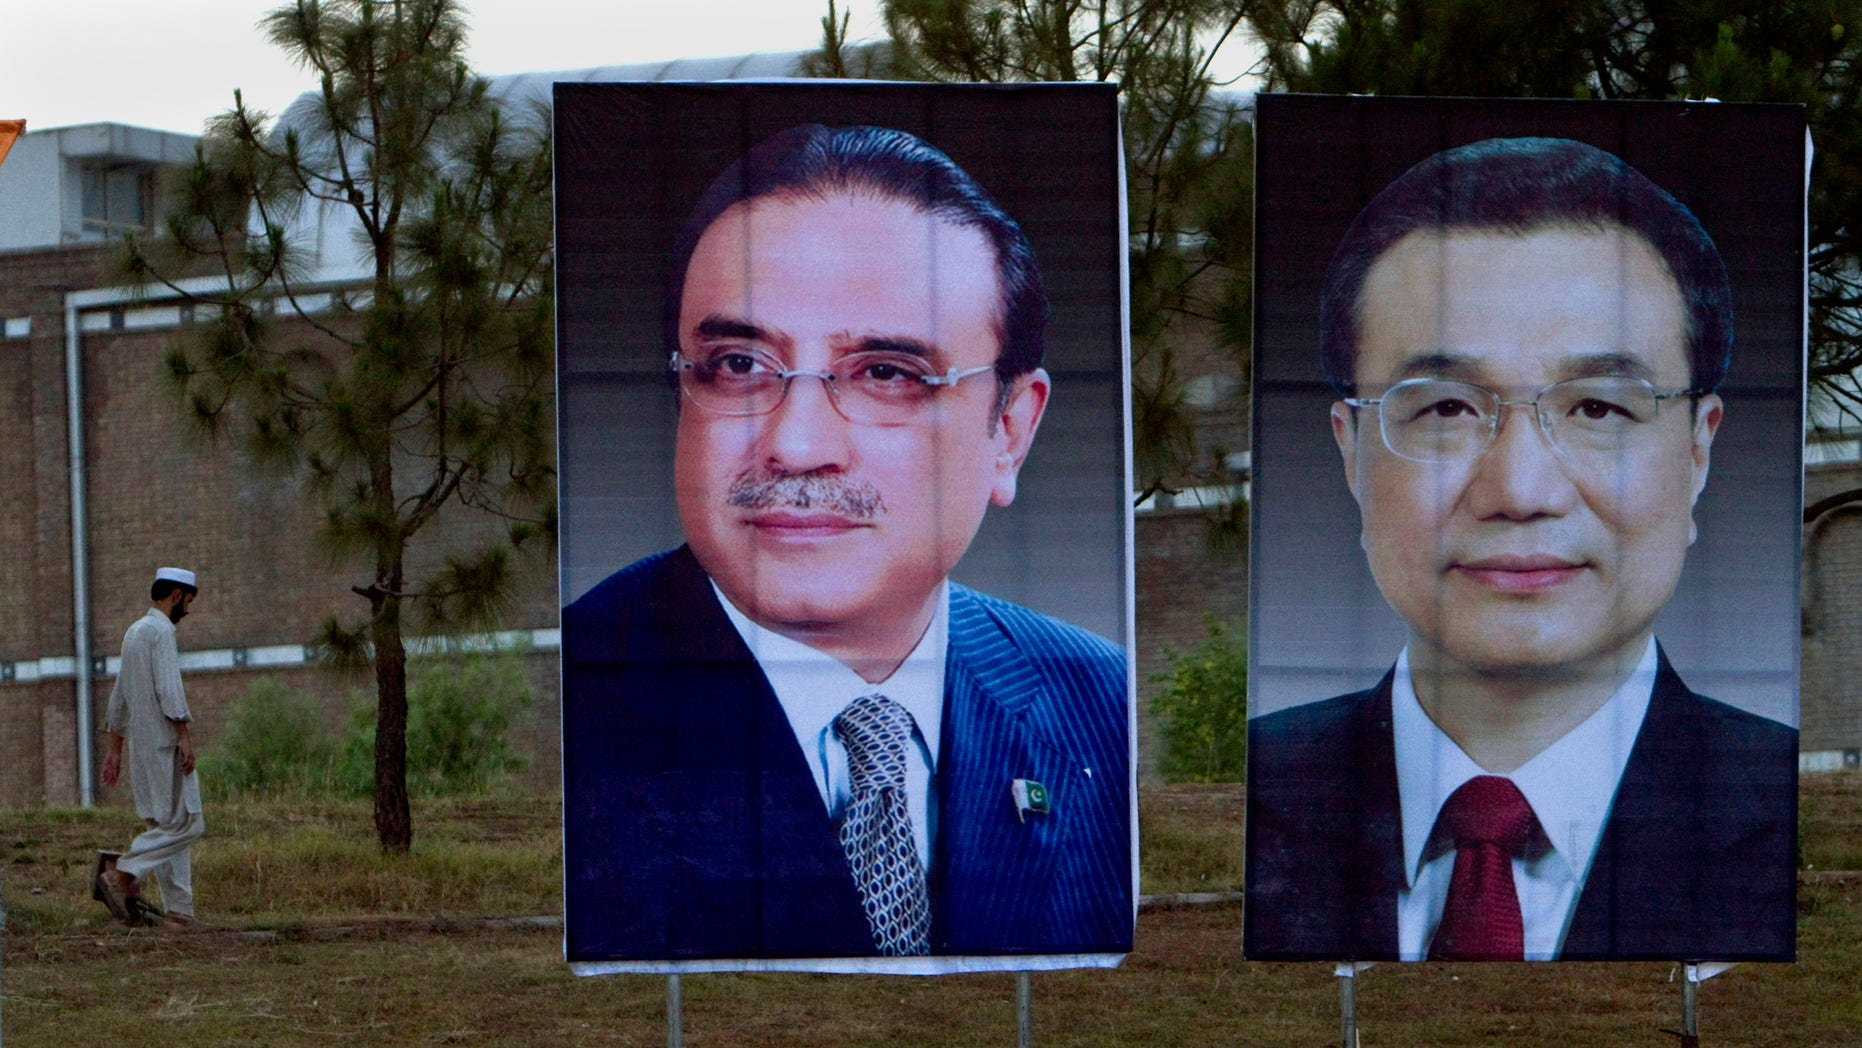 A man walks next to huge portraits of Chinese Premier Li Keqiang, right, and Pakistani President Asif Ali Zardari, left, displayed near the presidency in Islamabad, Pakistan. Keqiang will arrive in Islamabad on May 22 on a two day official visit to hold talks with Pakistani leadership to discuss international, regional issues and enhance co-operation in bilateral ties. (AP Photo/Anjum Naveed)